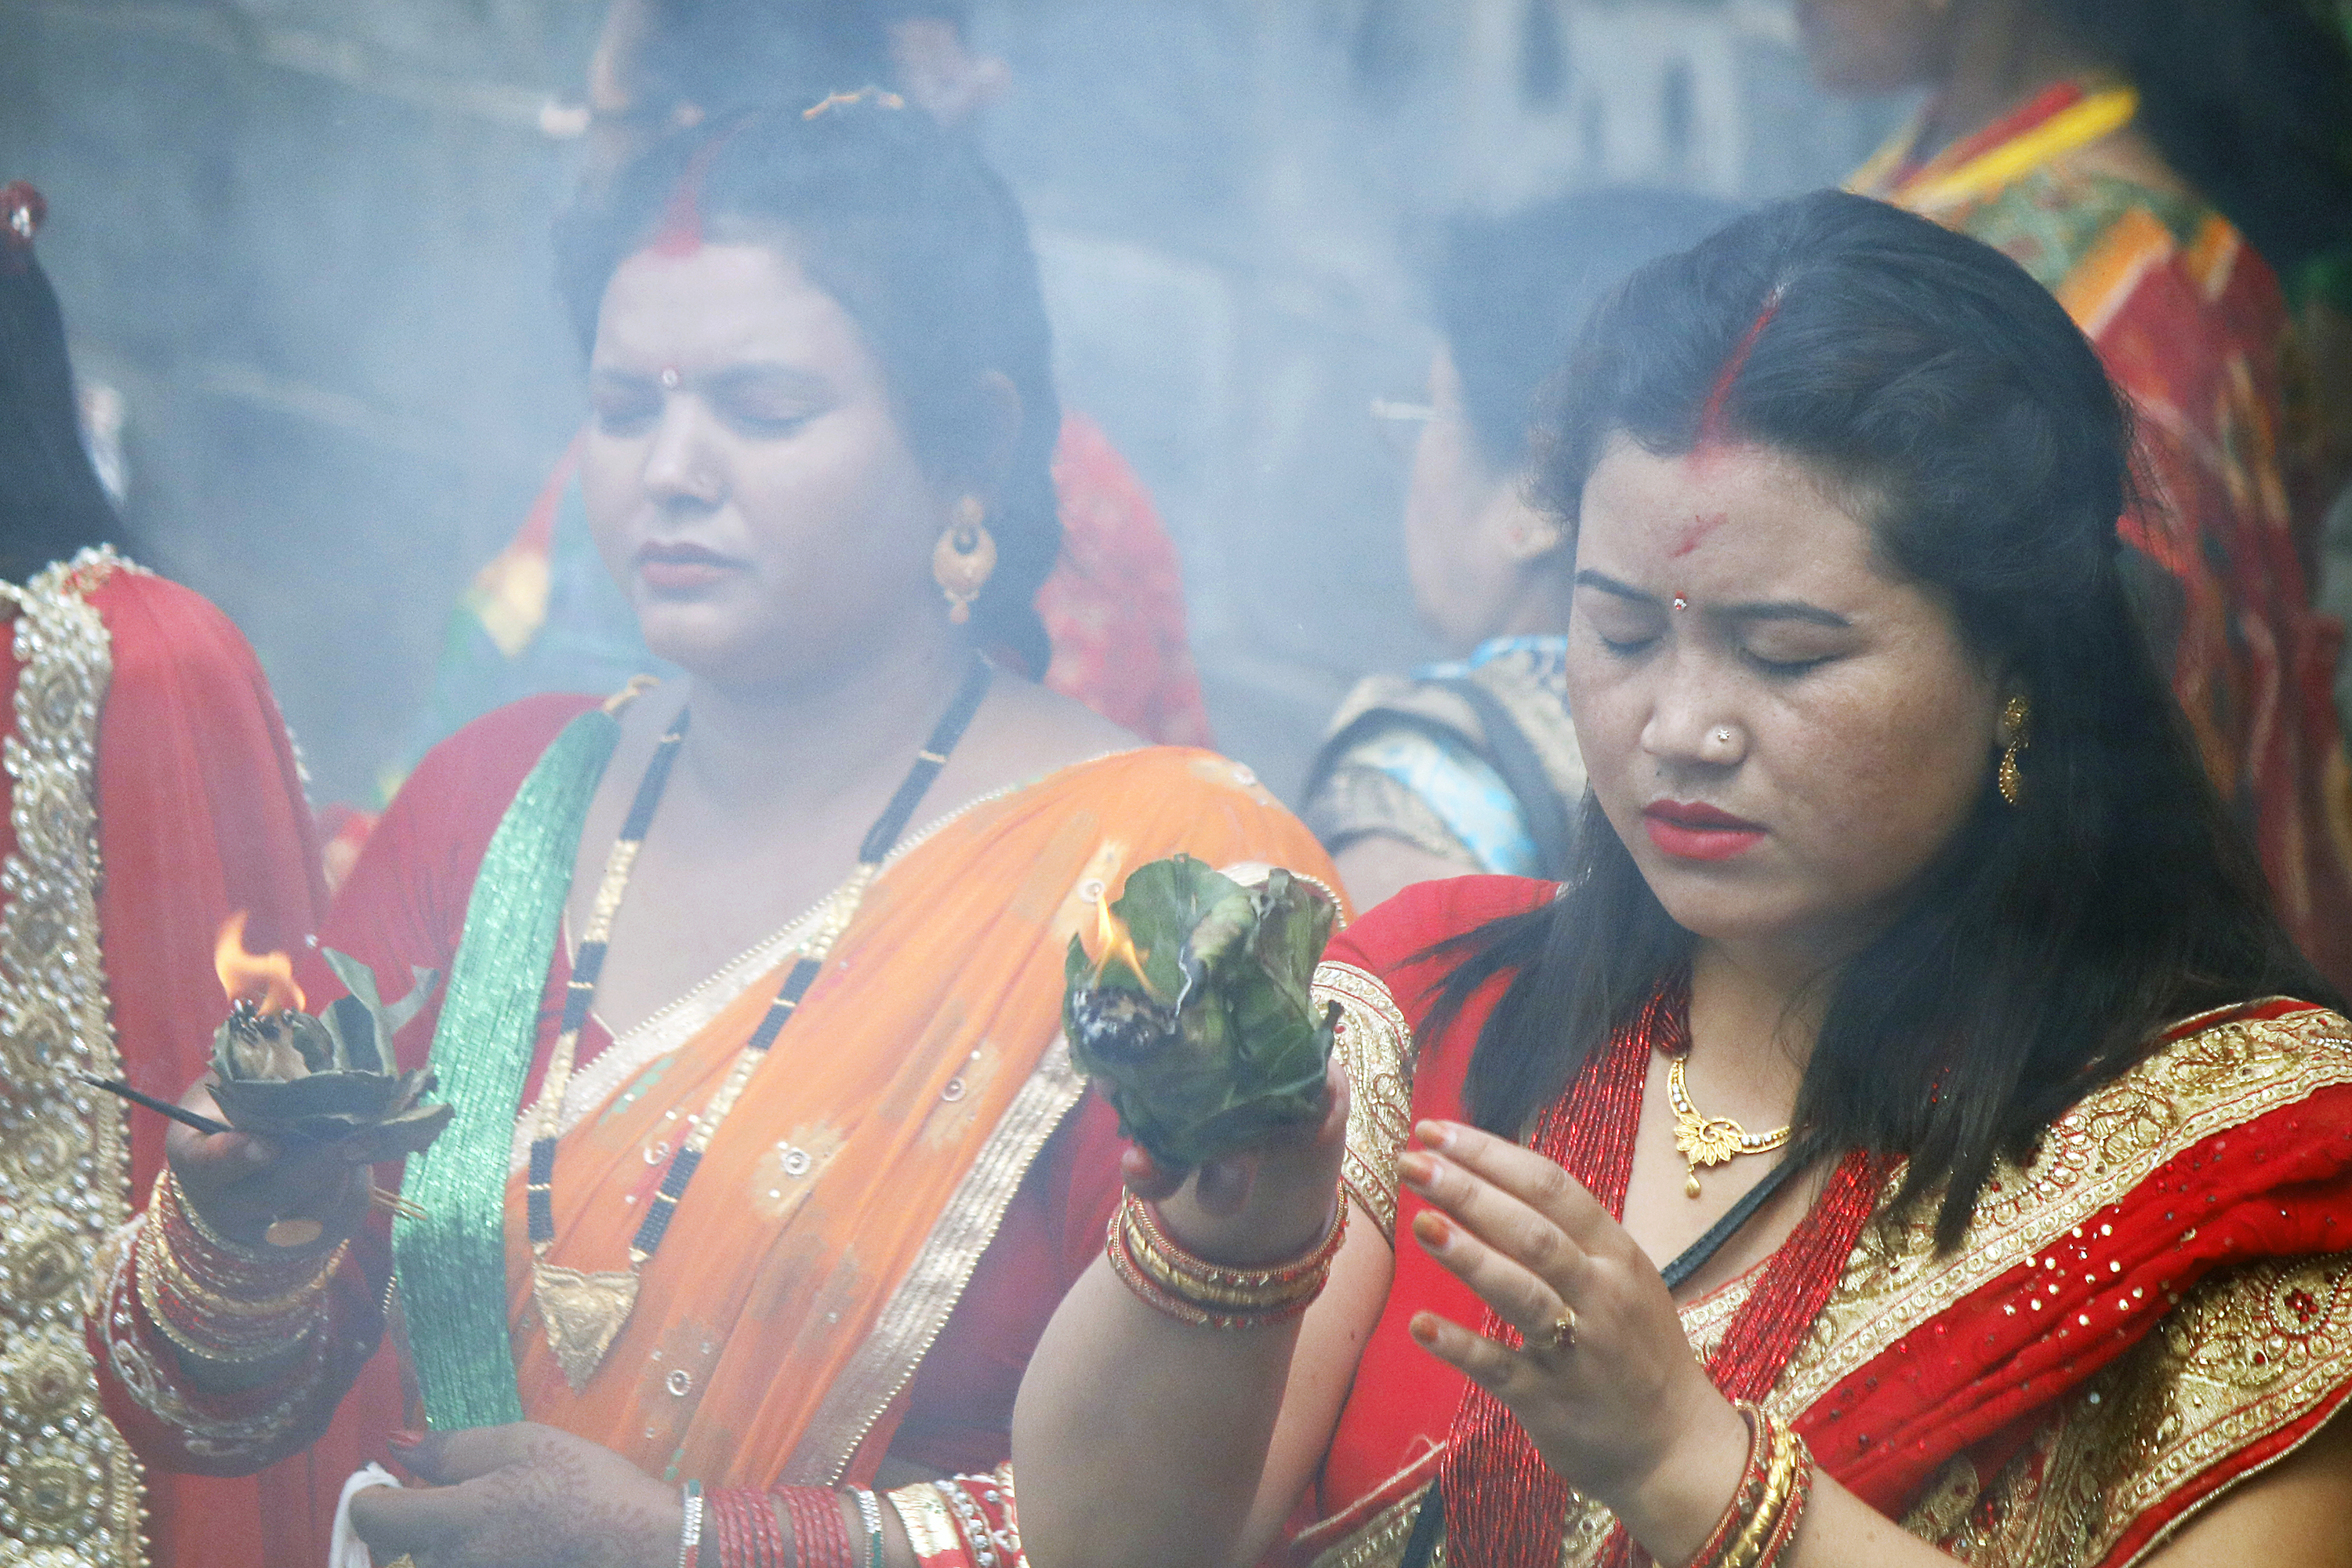 hindu single women in mark In hinduism, the tilaka (sanskrit: तिलक) is a mark worn usually on the forehead,  sometimes  it consists of three horizontal bands across the forehead with a  single vertical band or circle in the middle this is  they draw one vertical line  or dot (not to be confused with bindi used by indian women from different  religions.